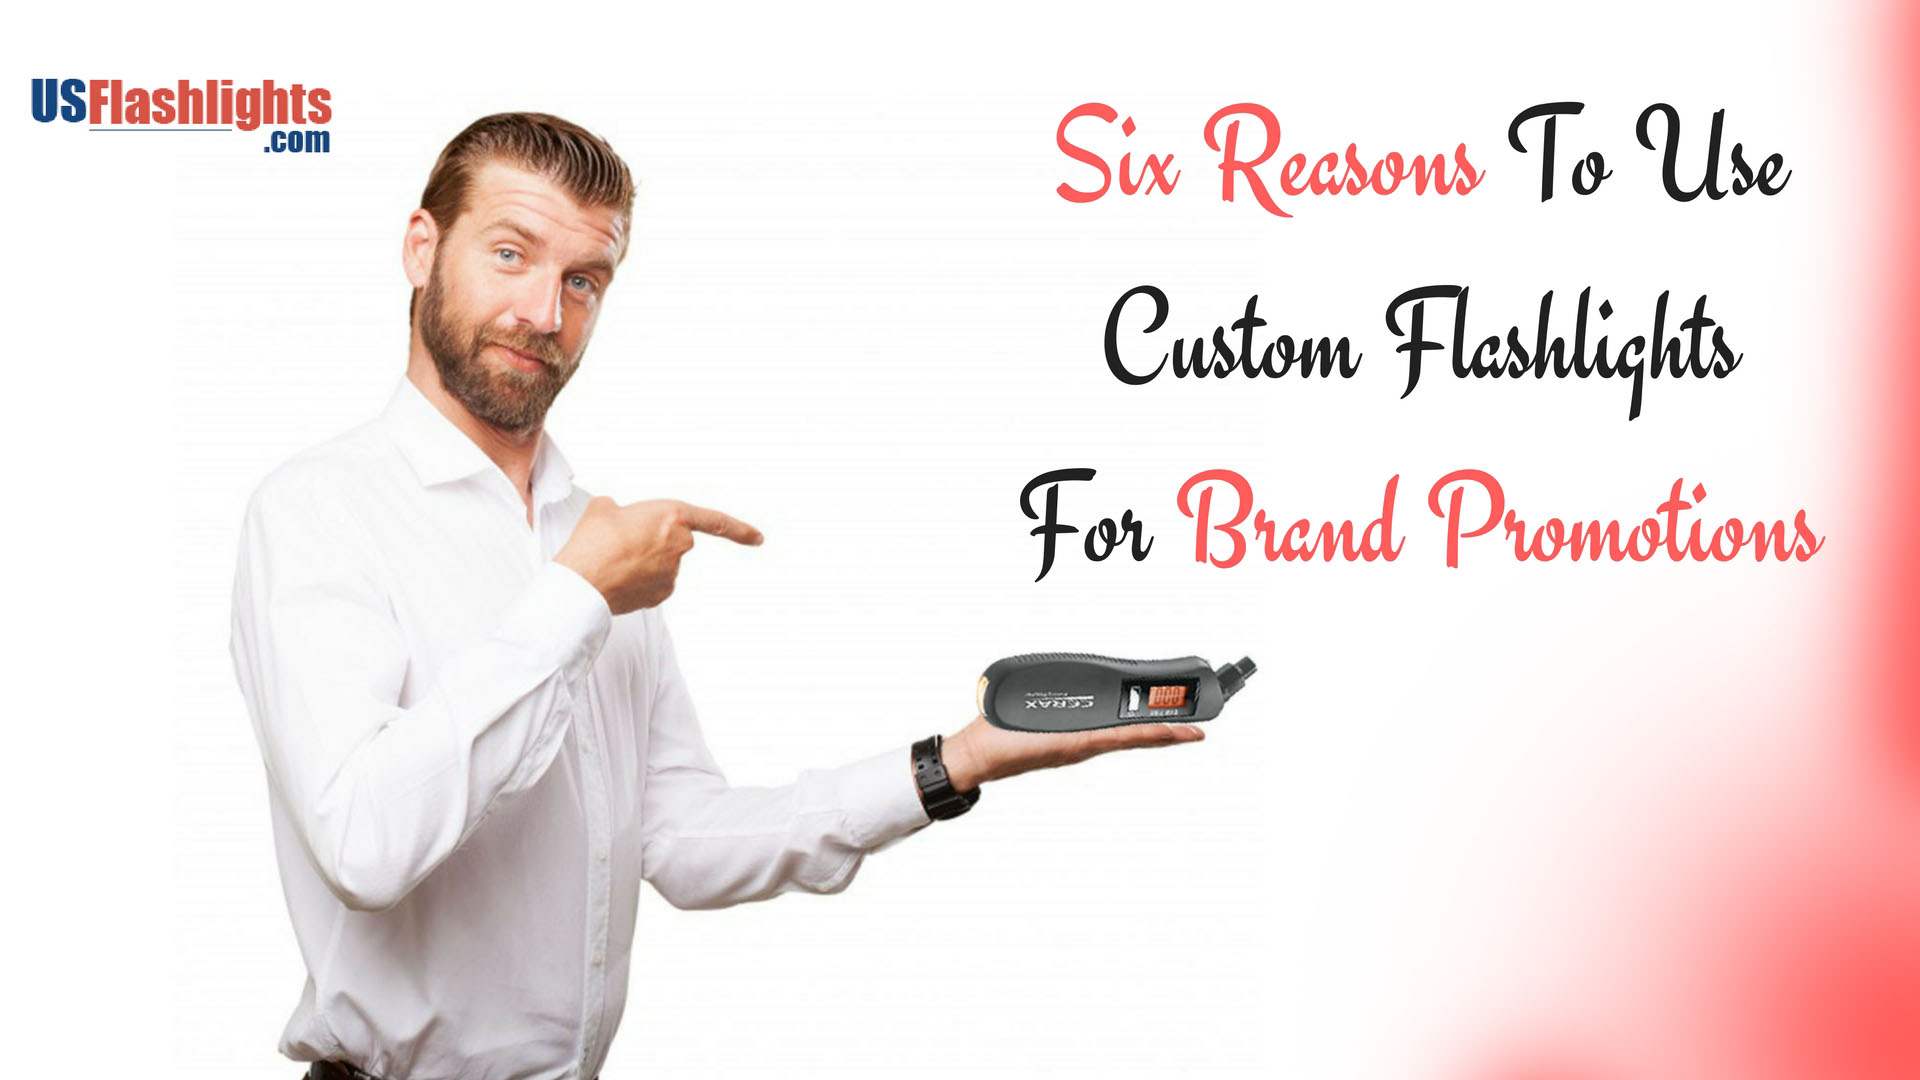 sixreasons-brand-promotions-flashlight